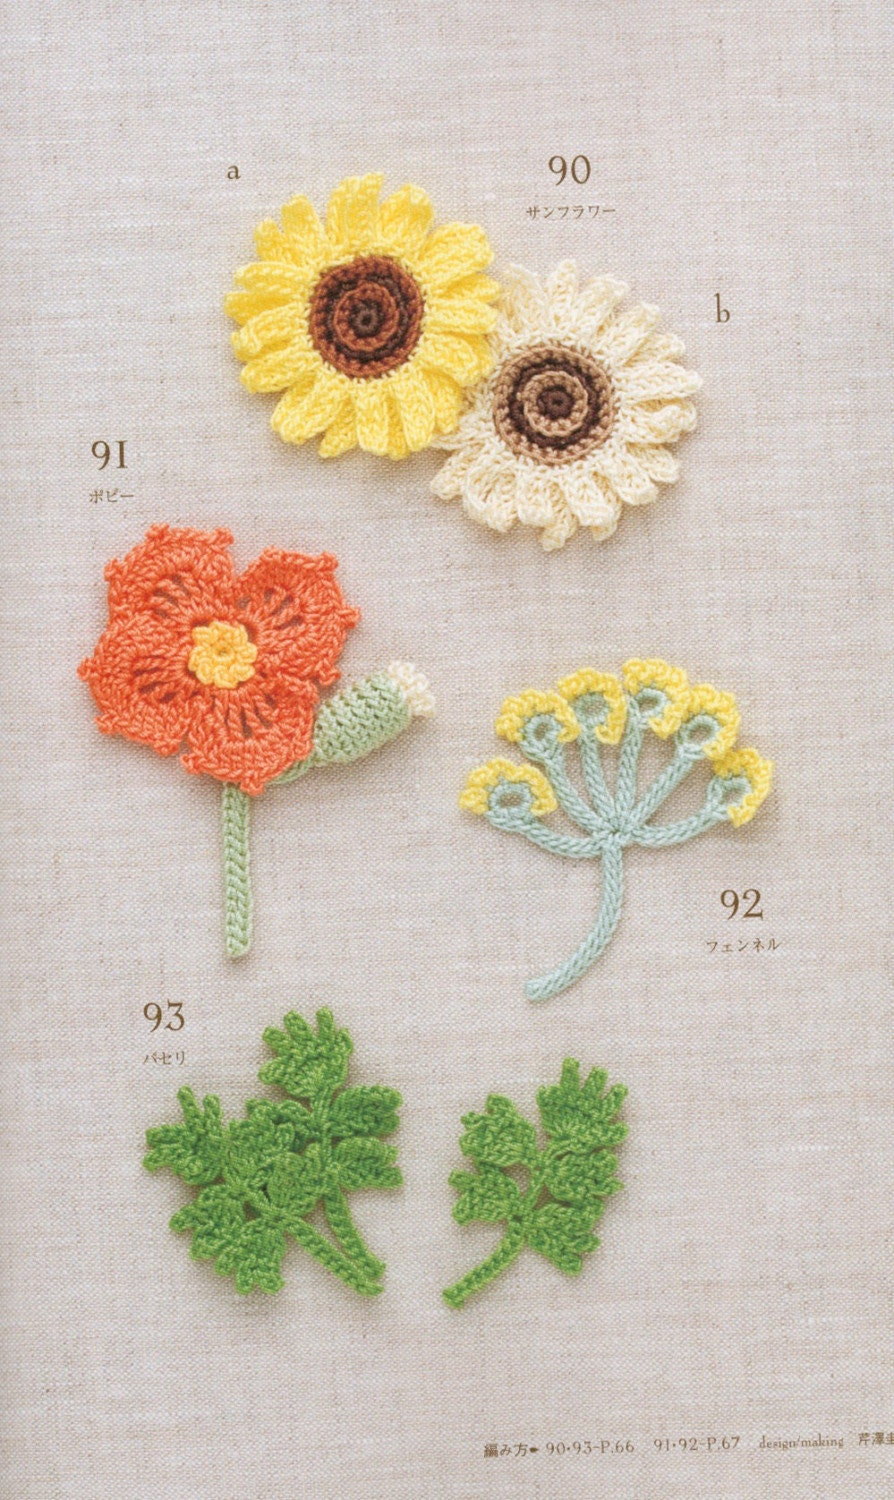 Crochet Mini Motif 100- Japanese Crochet Craft Book